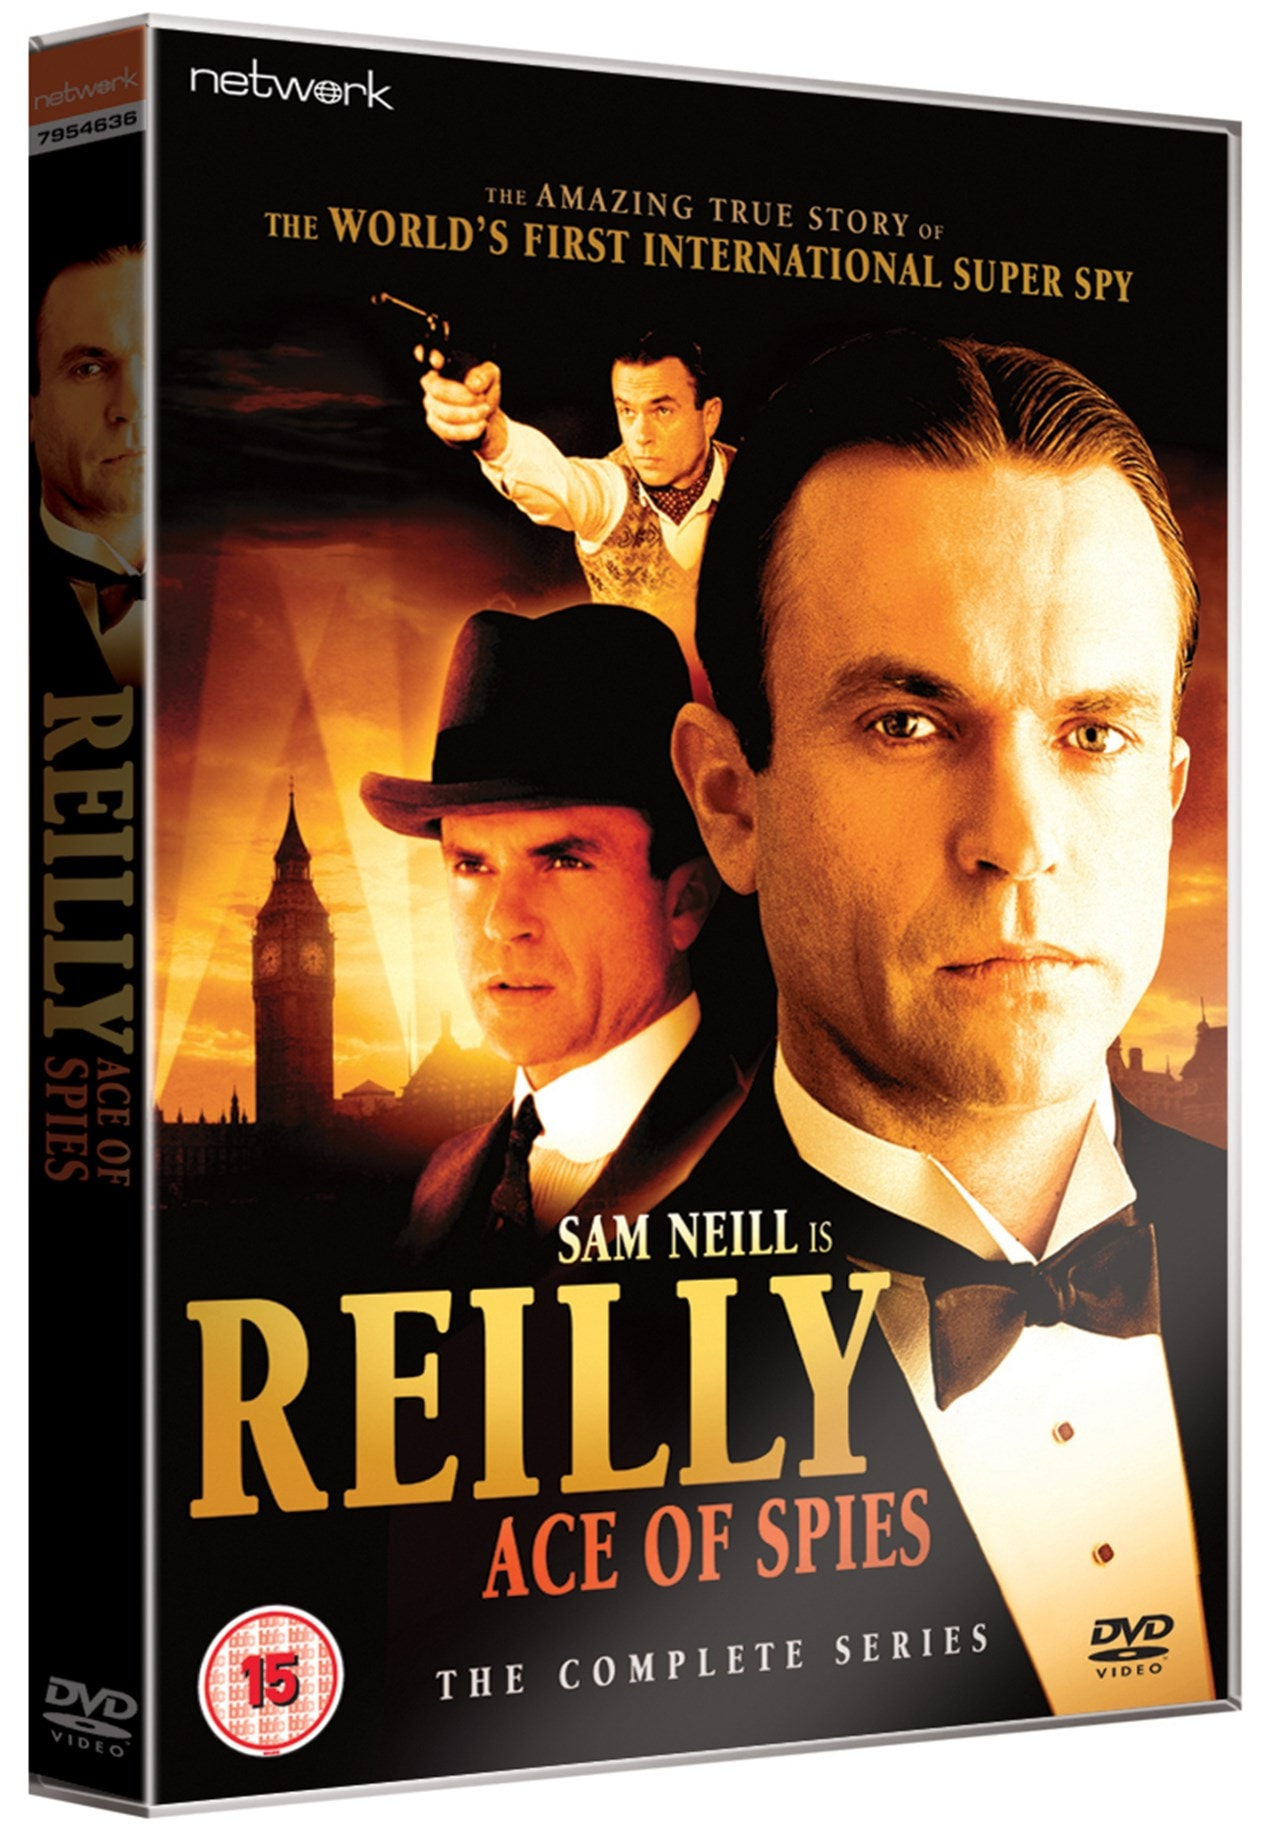 Reilly - Ace of Spies: The Complete Series - 2